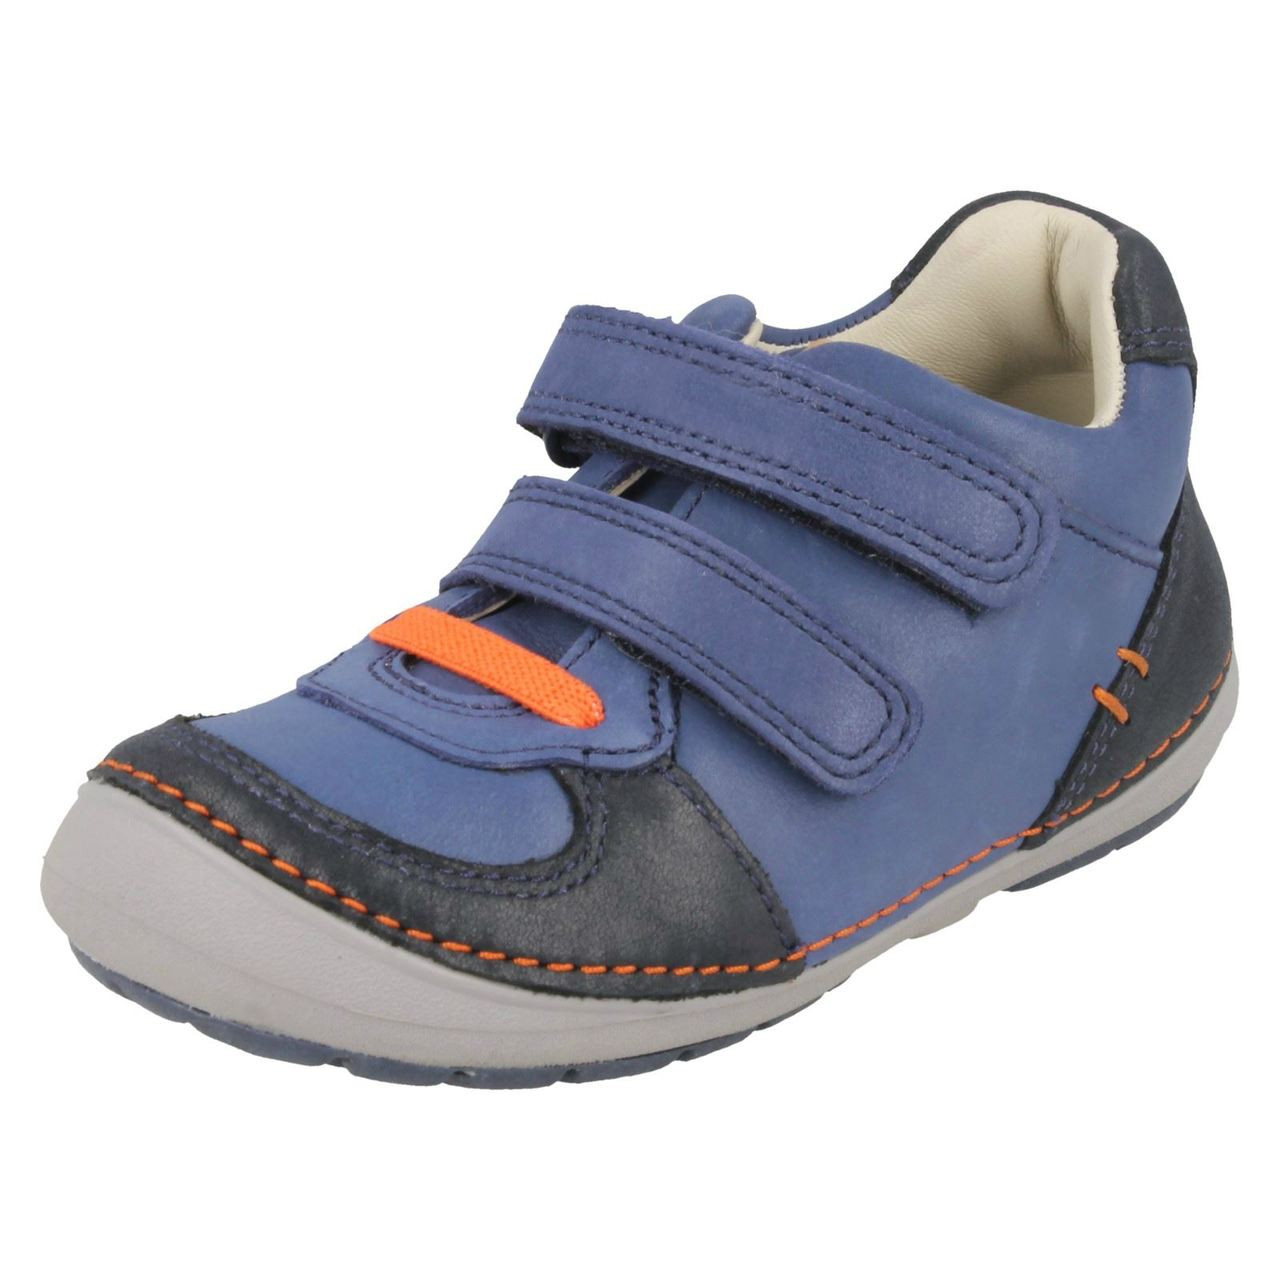 Boys Clarks Casual Hook And Loop Fastening Shoes Emery Walk K